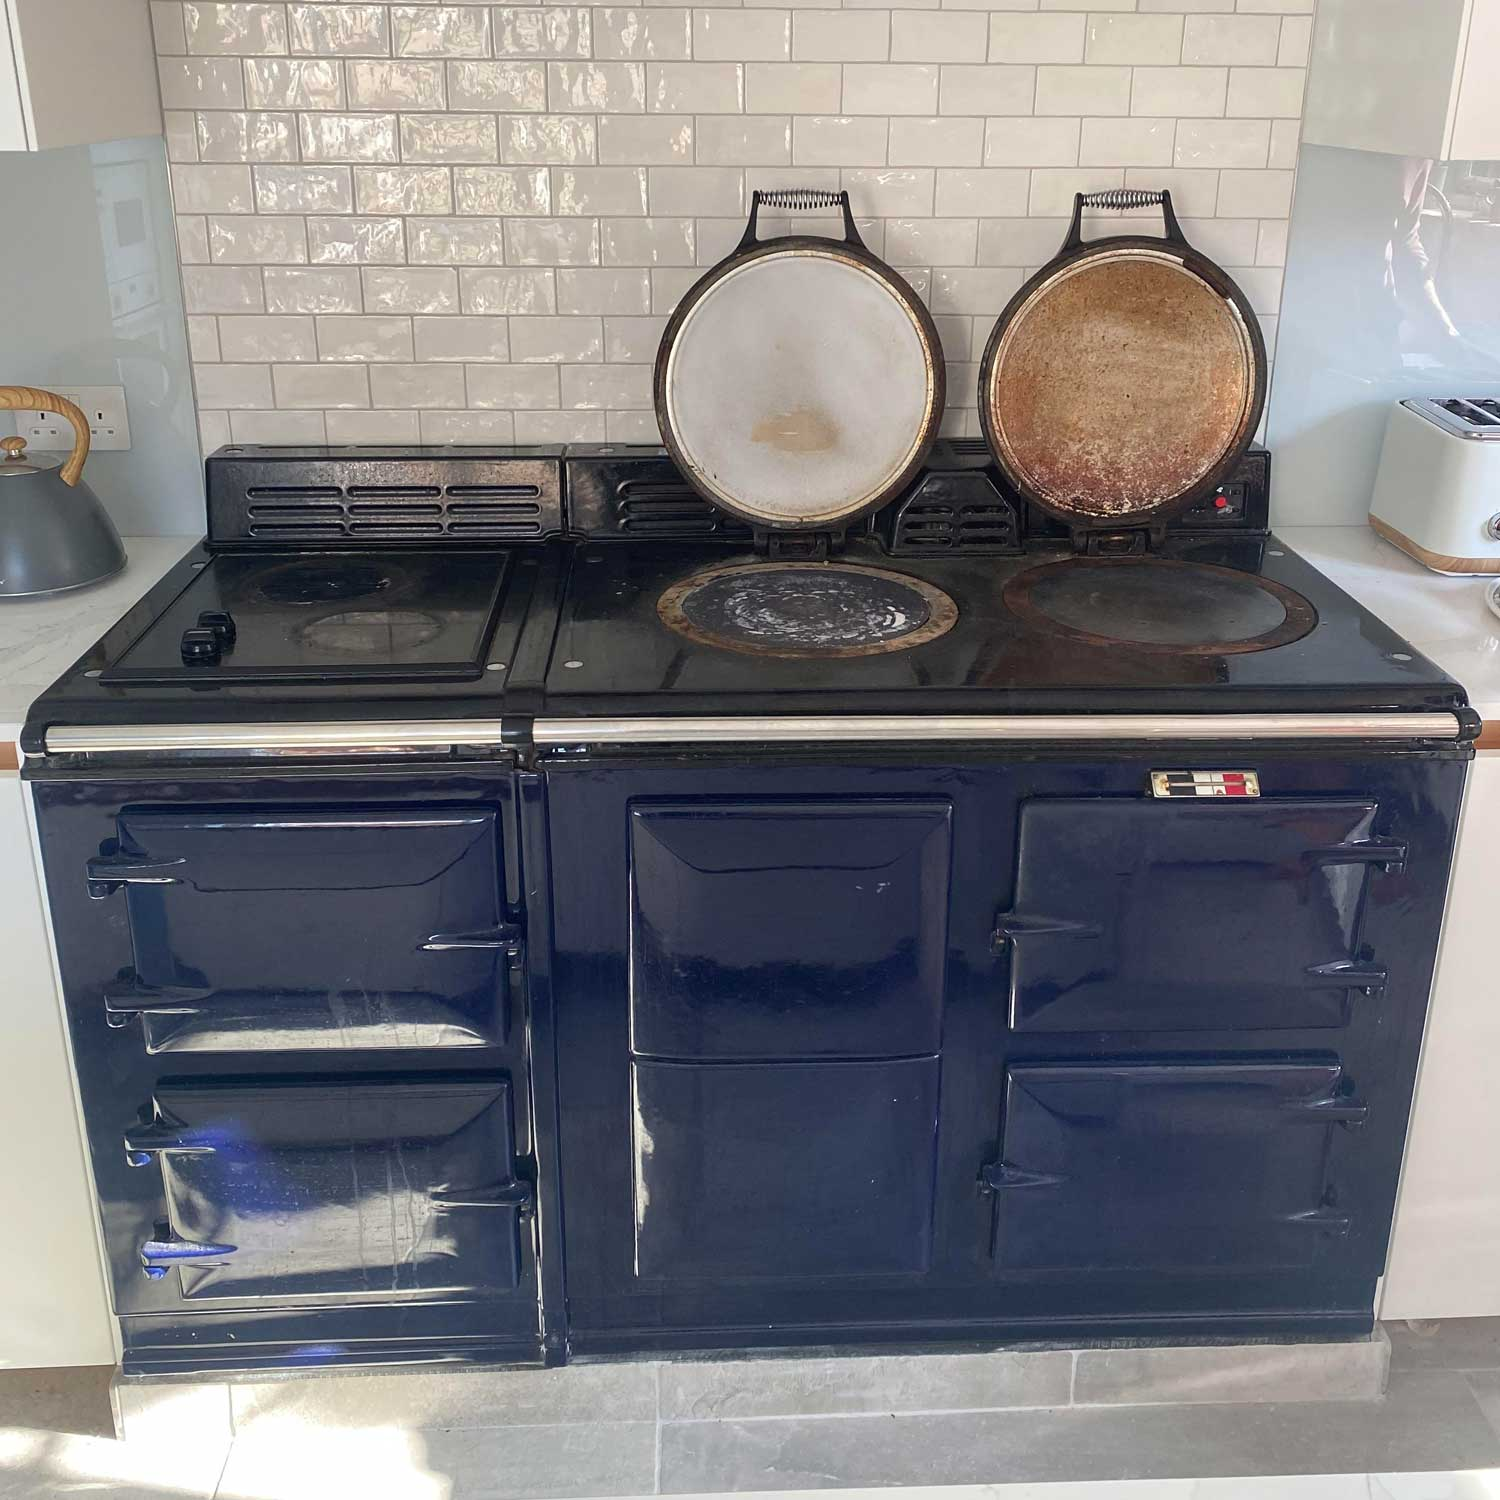 How to move an Aga range cooker